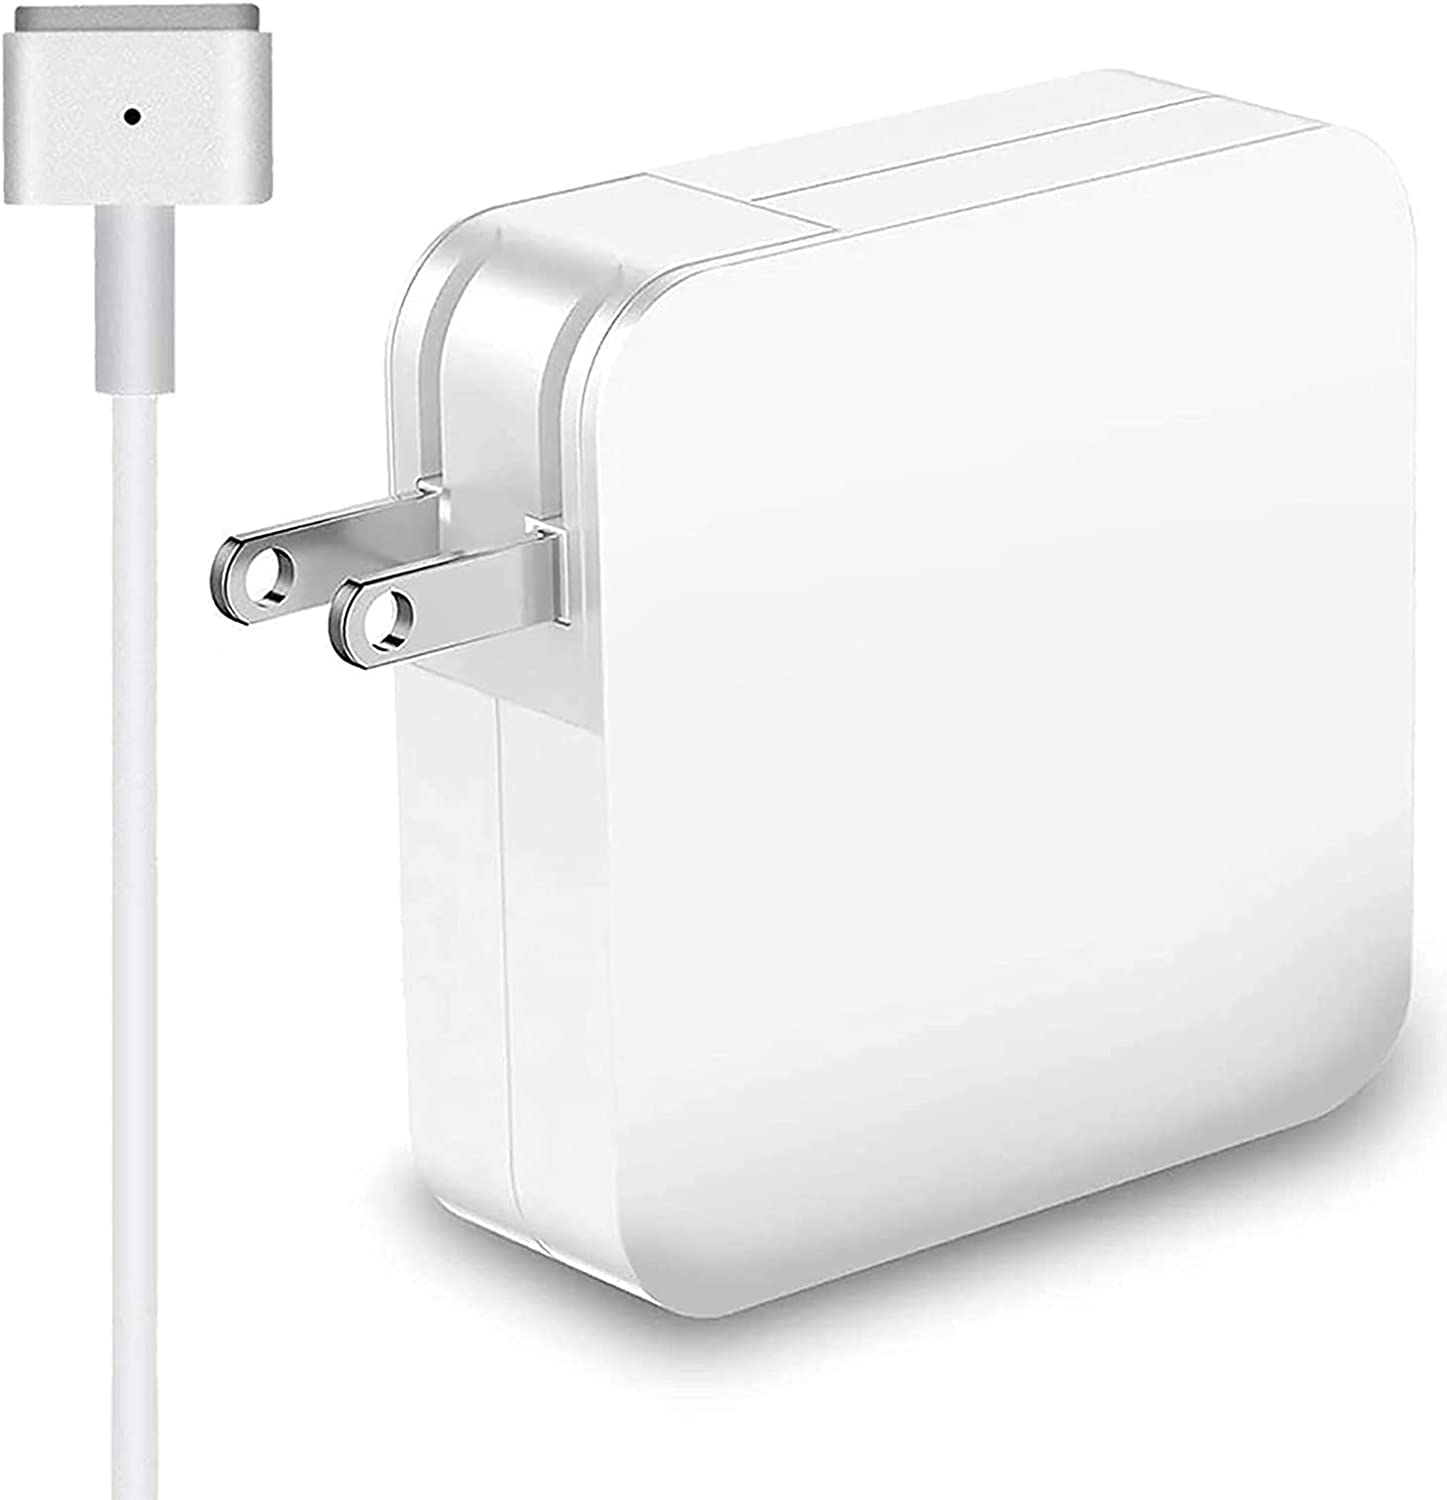 Mac Book Air Charger, 45W T-Tip Power Adapter Charger for Mac Book Air 11-inch and 13 inch